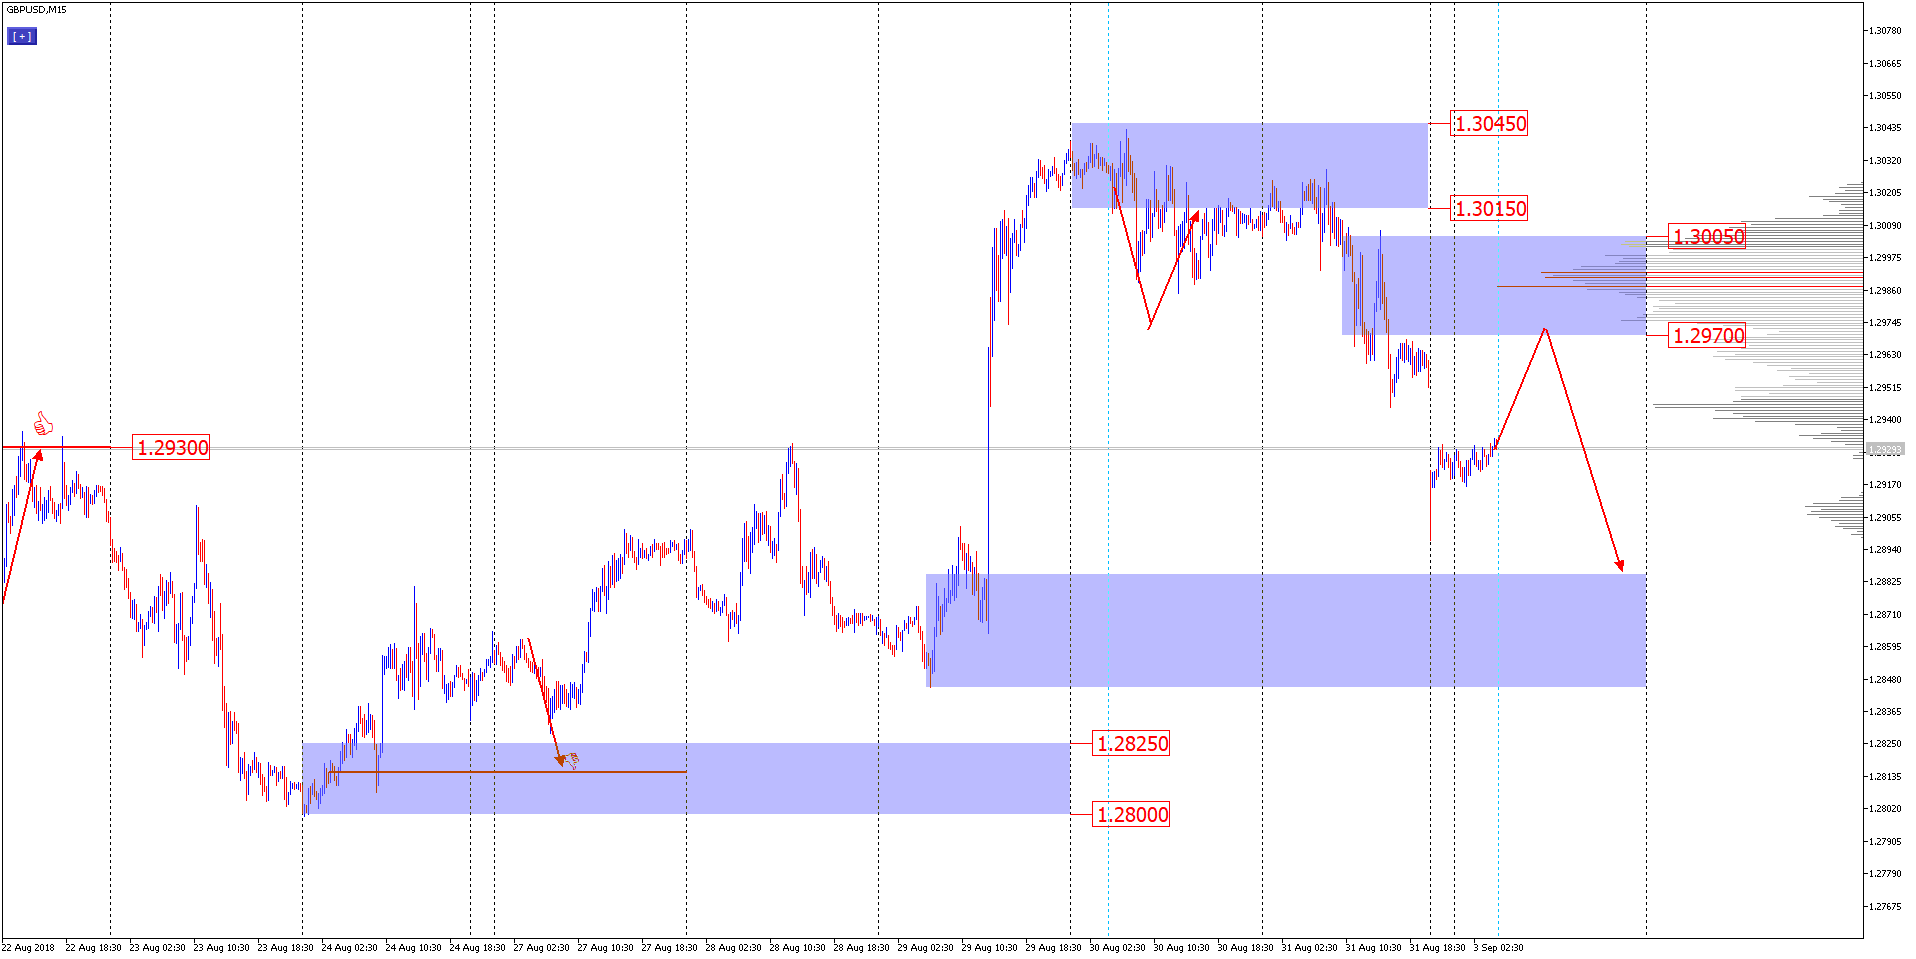 technical analysis of GBPUSD for September 3